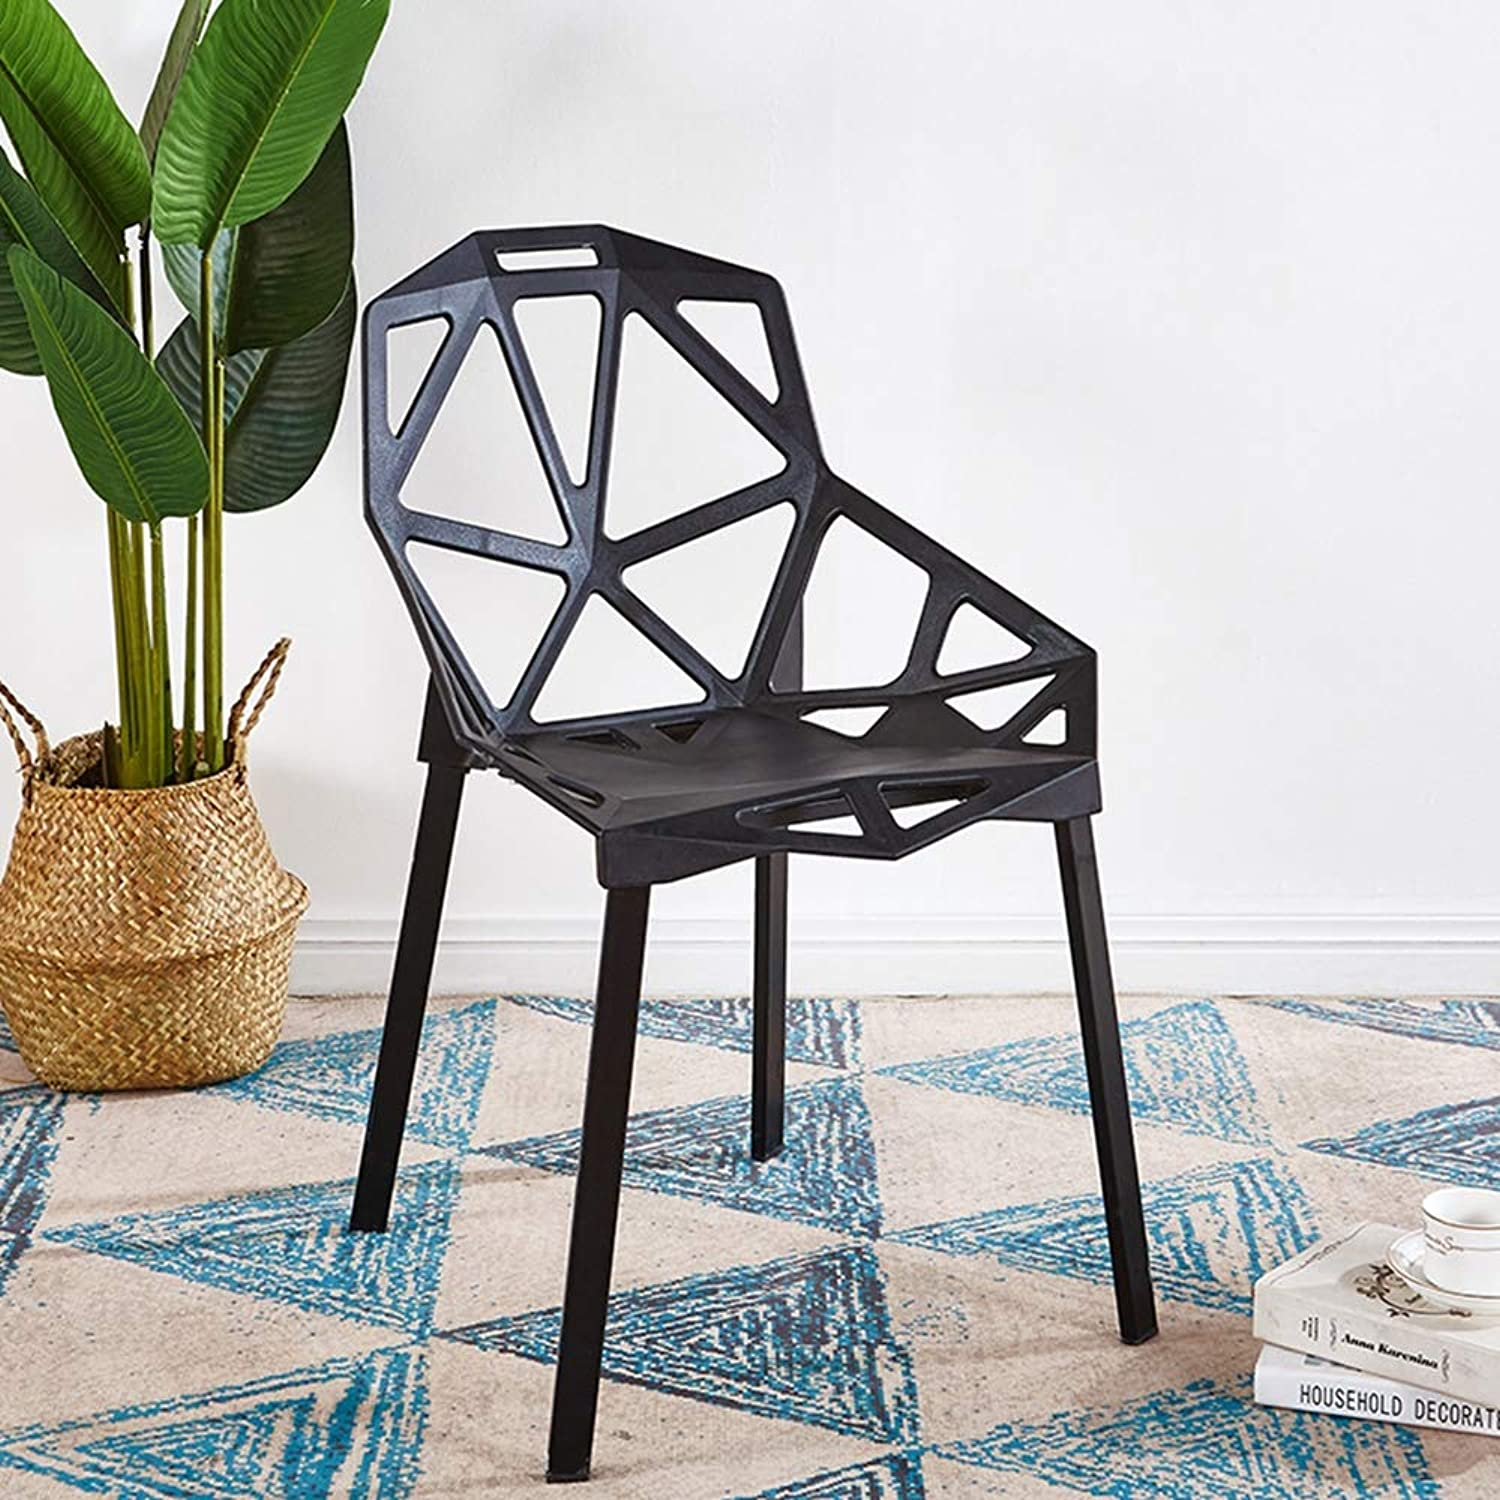 Plastic Chair Transformers Chair Spot Simple Modern Hotel Restaurant Cafe Fashion Leisure Backrest Plastic Chair Quality Environmental Predection Pp Material,Black